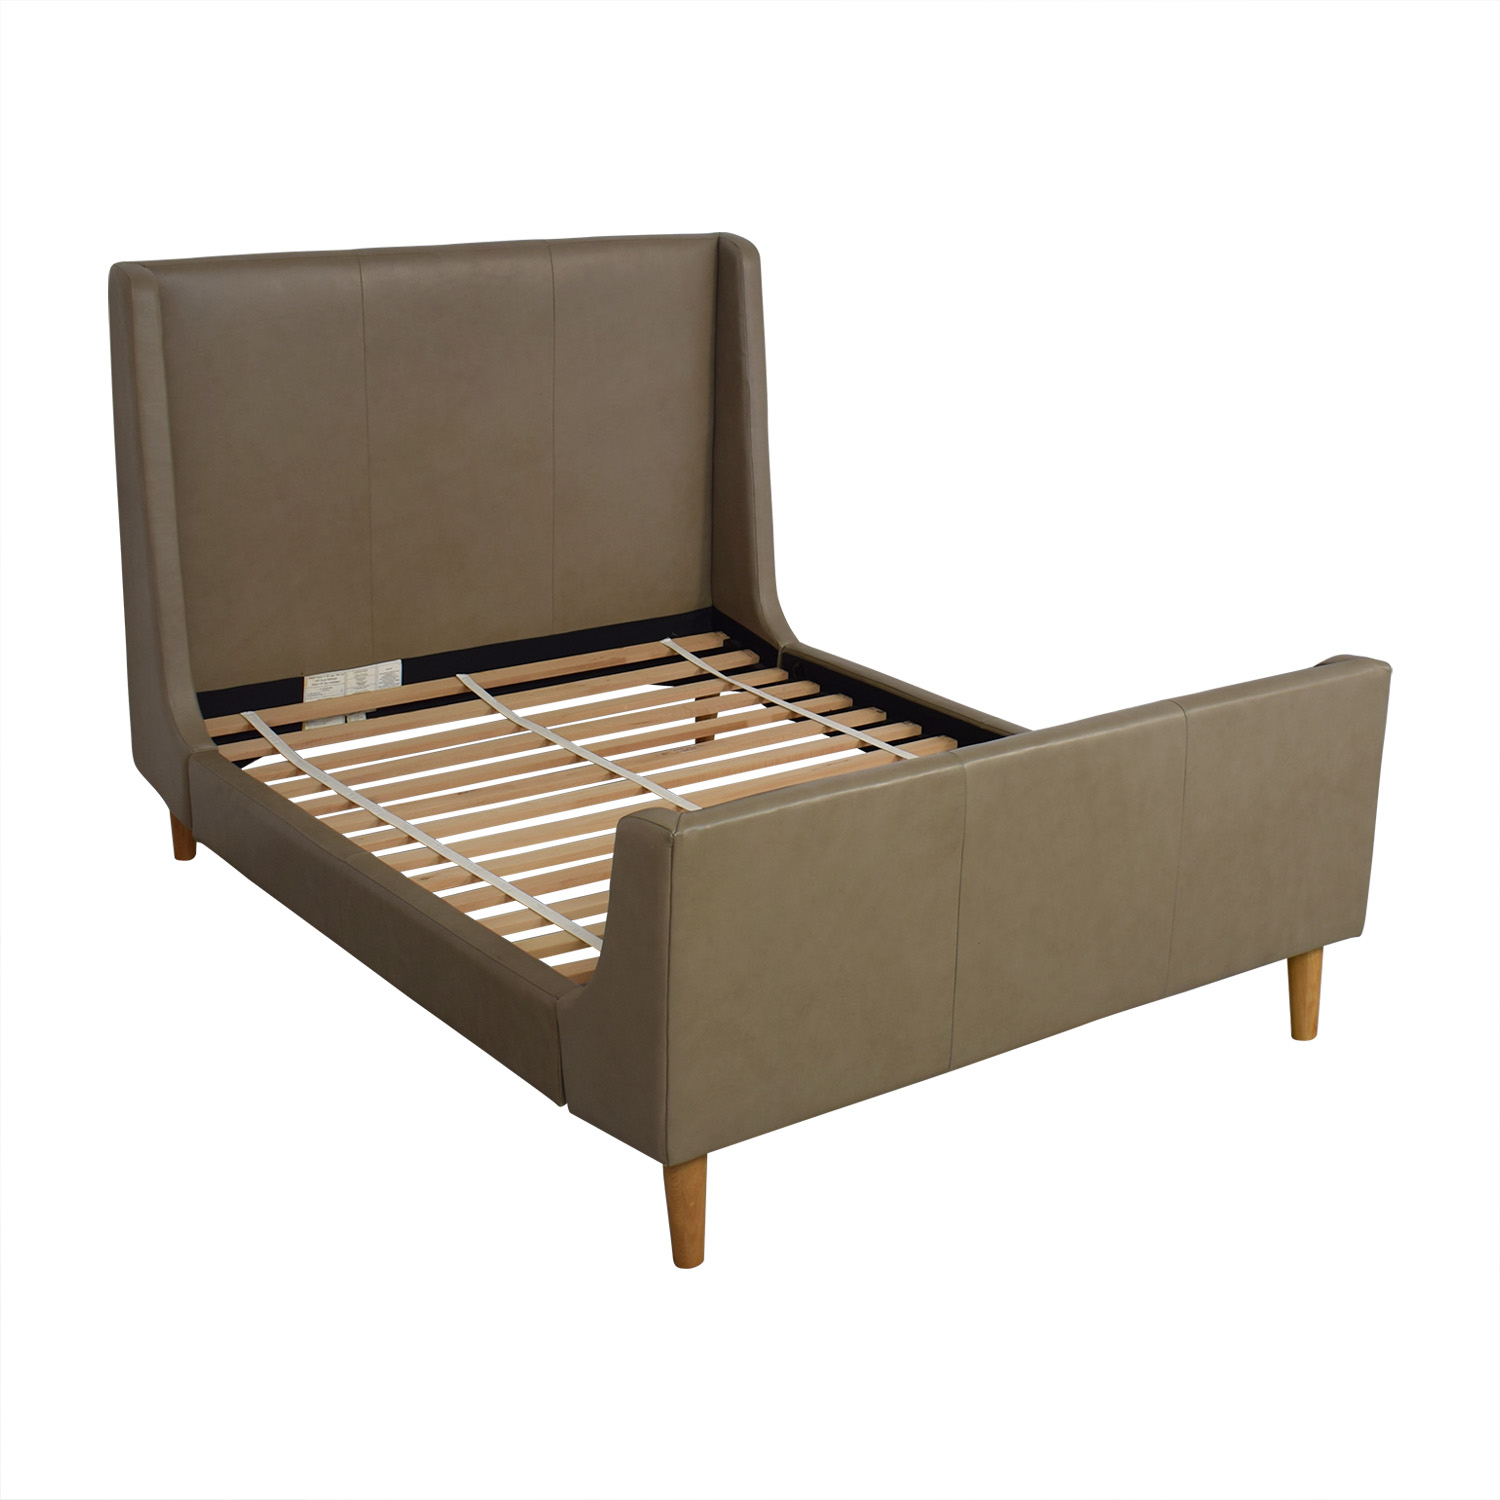 buy West Elm Upholstered Sleigh Full Bed Frame West Elm Bed Frames